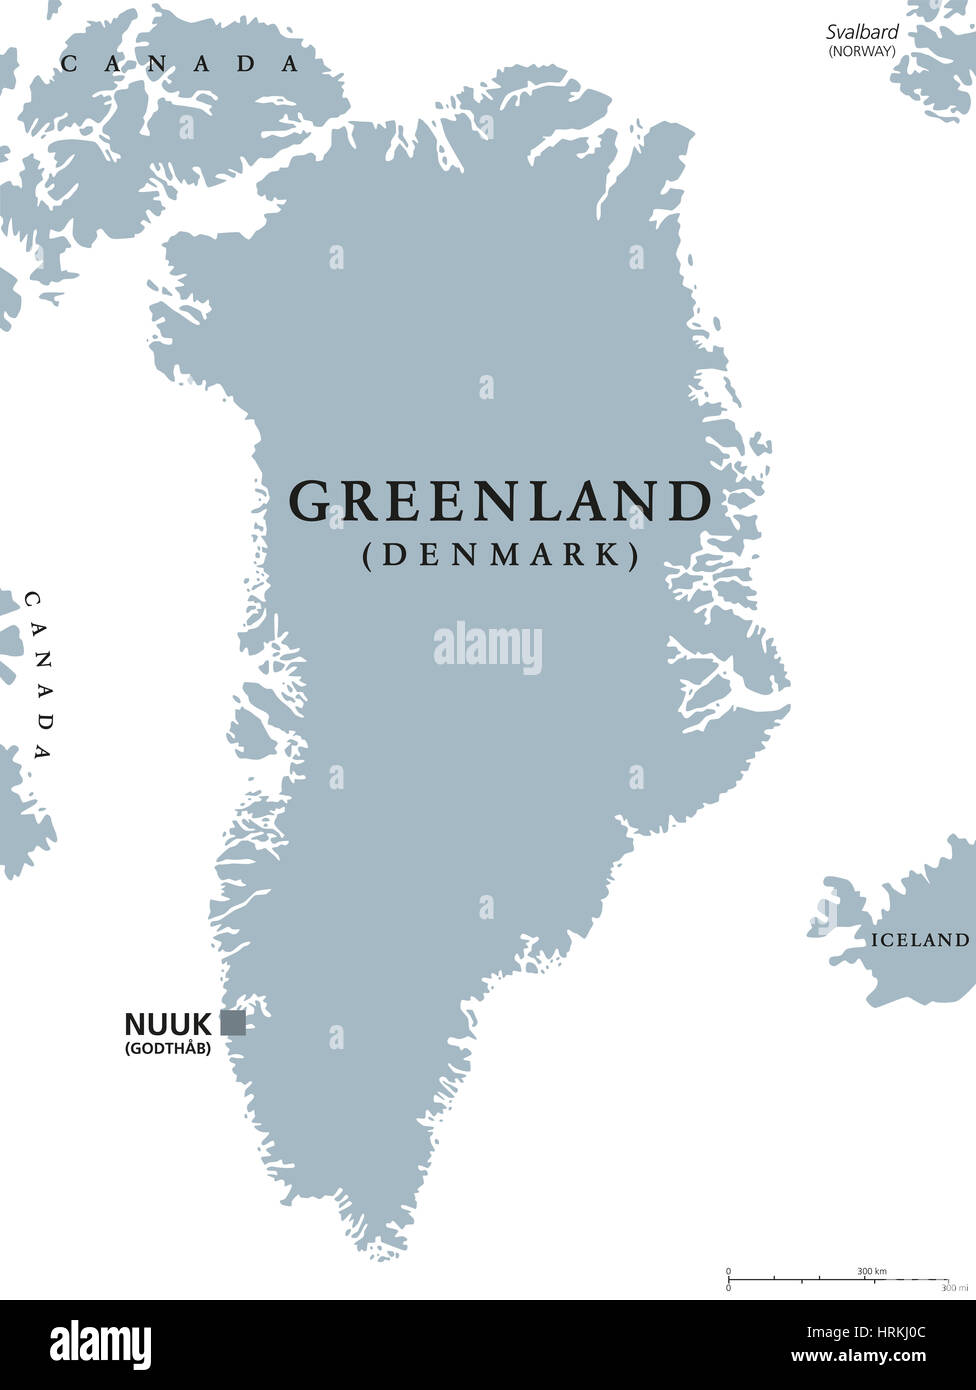 Greenland political map with capital Nuuk and neighbor countries